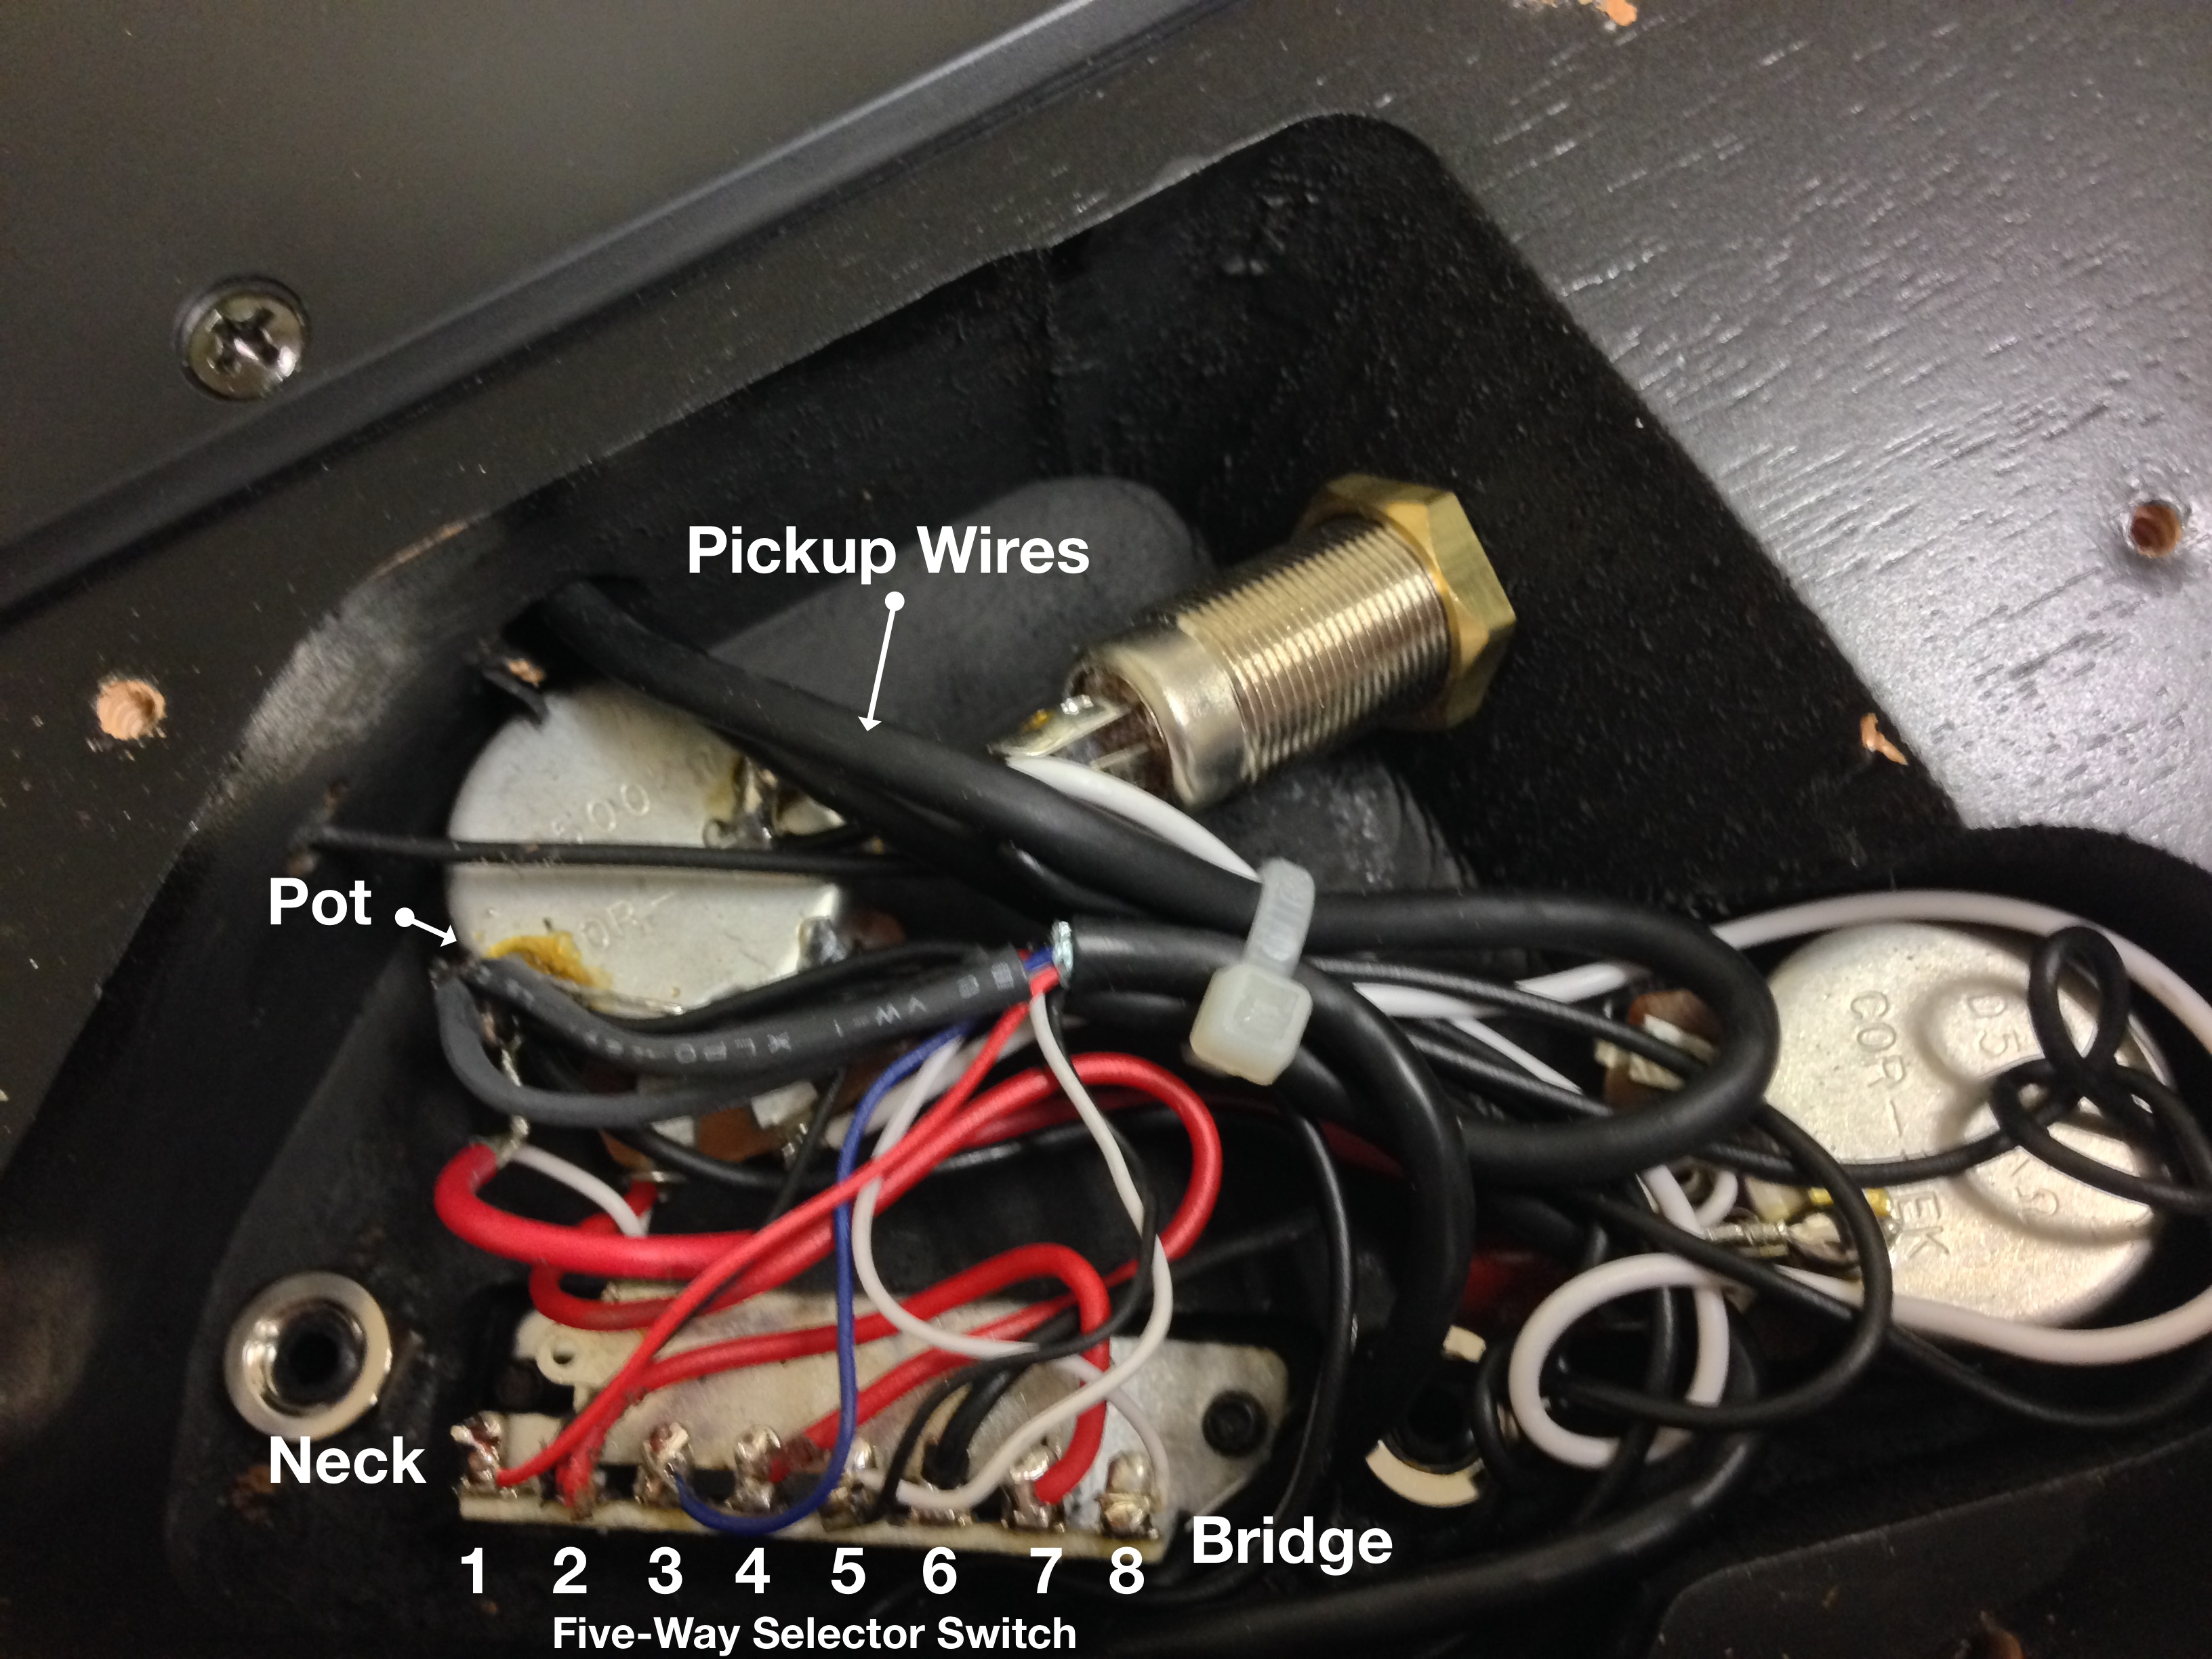 Changing the Pickups in an Ibanez S420 Guitar The inability to – Ibanez Guitar Pickup Switch Wiring Diagram